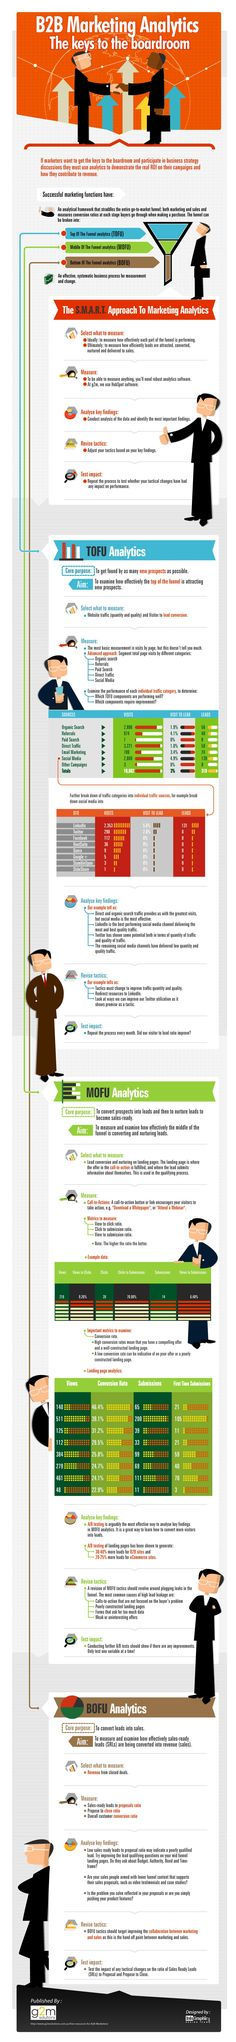 B2B Marketing Analytics #infographic #marketing